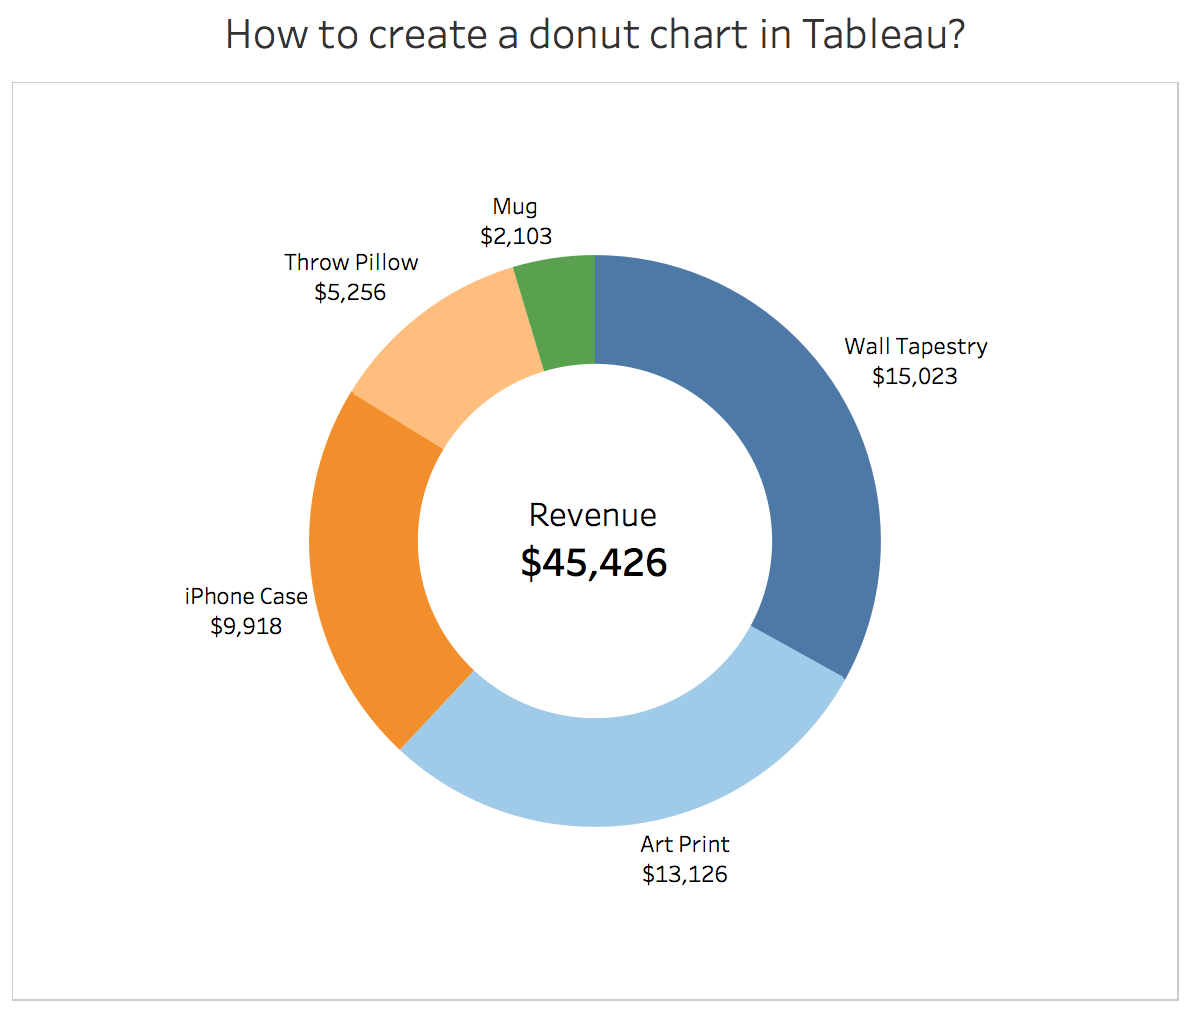 How to create a donut chart in tableau nikki yu posted on july 28 2017 july 28 2017 by nikki yu ccuart Images